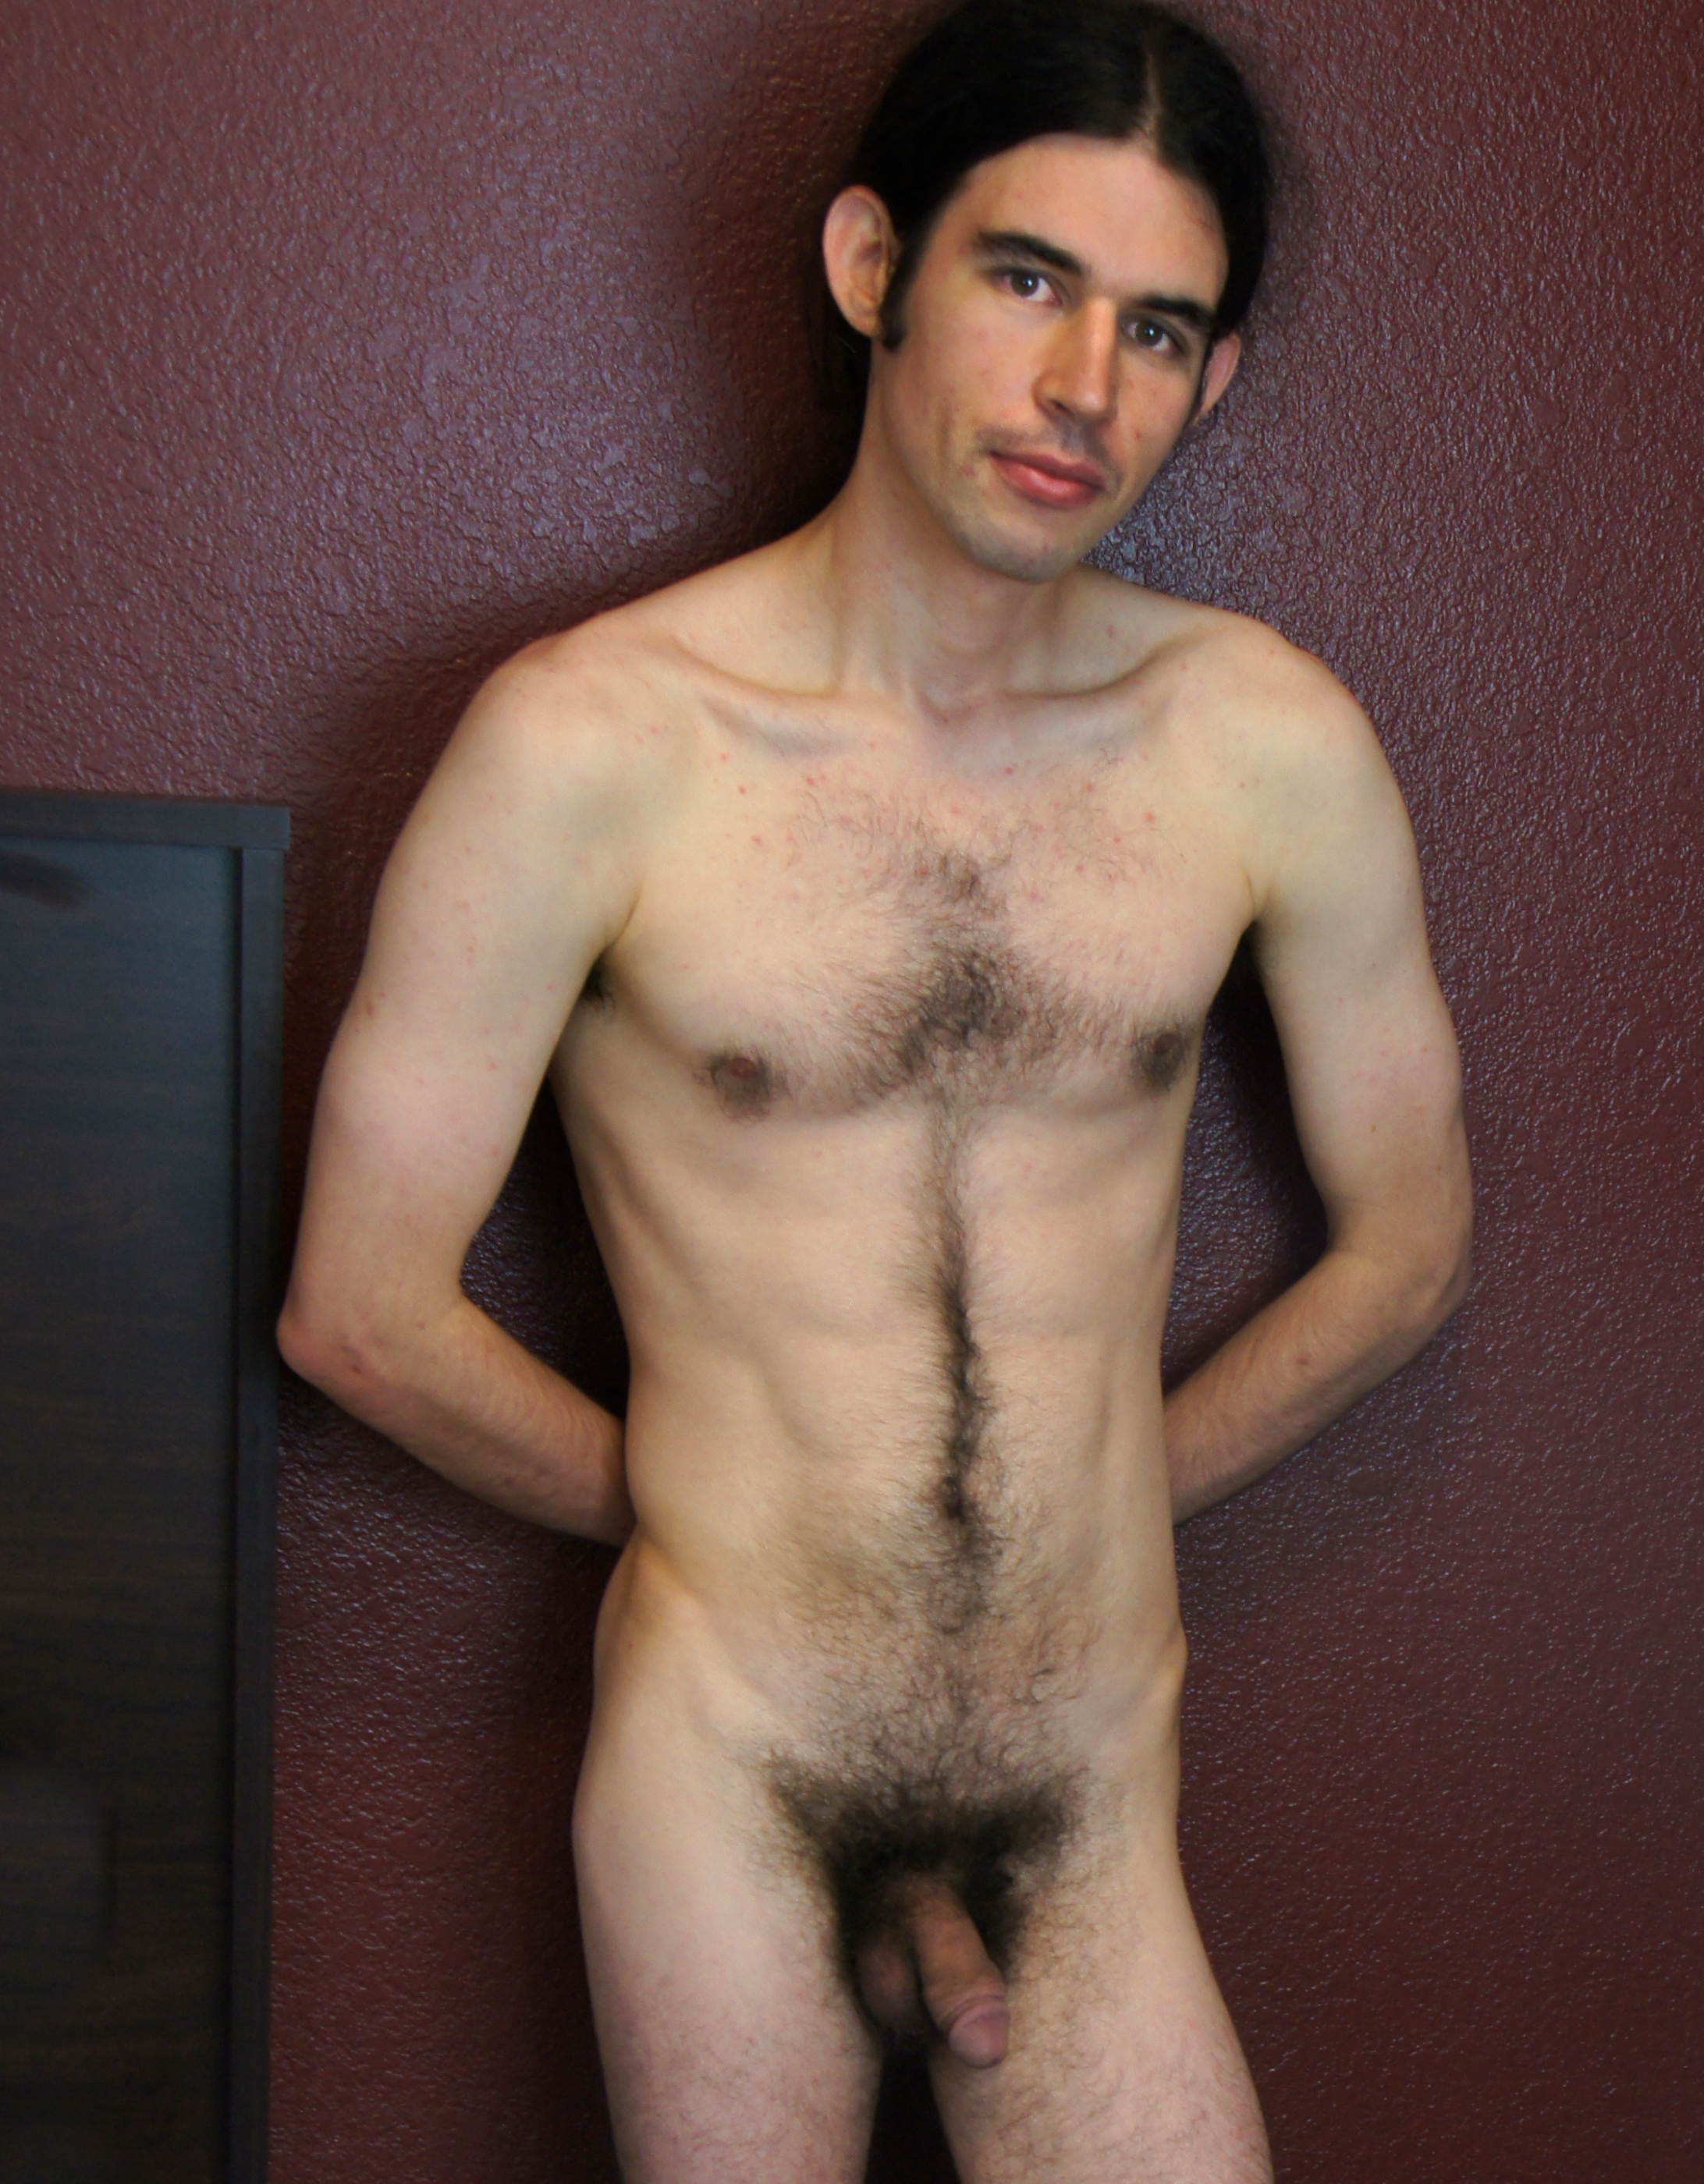 Naked hairy caucasian male standing